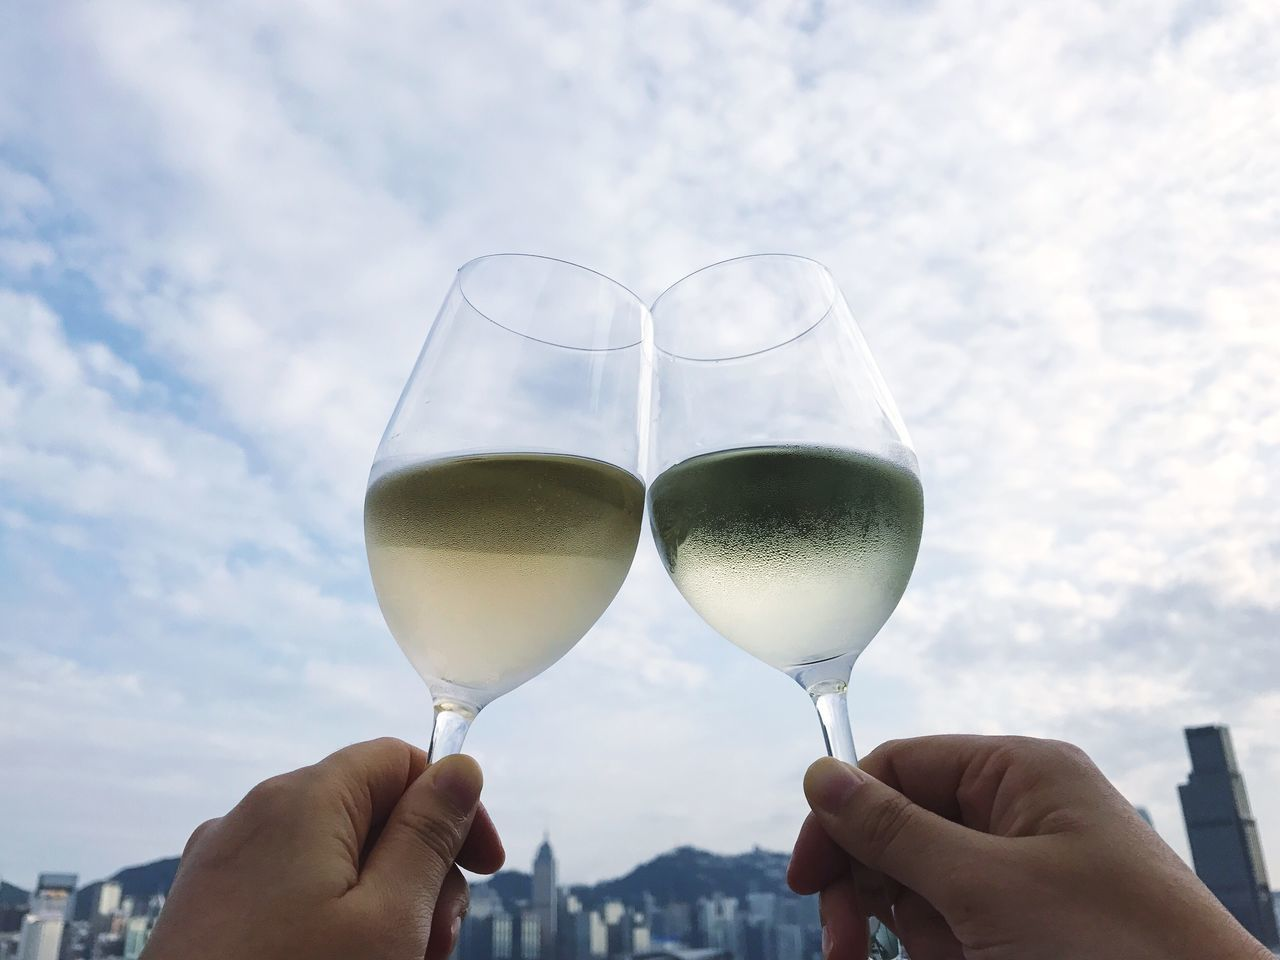 Human Hand Human Body Part Food And Drink Holding Real People Drink Personal Perspective Alcohol Unrecognizable Person Leisure Activity Focus On Foreground Sky One Person Drinking Glass Refreshment Lifestyles Cloud - Sky Outdoors Wineglass Day